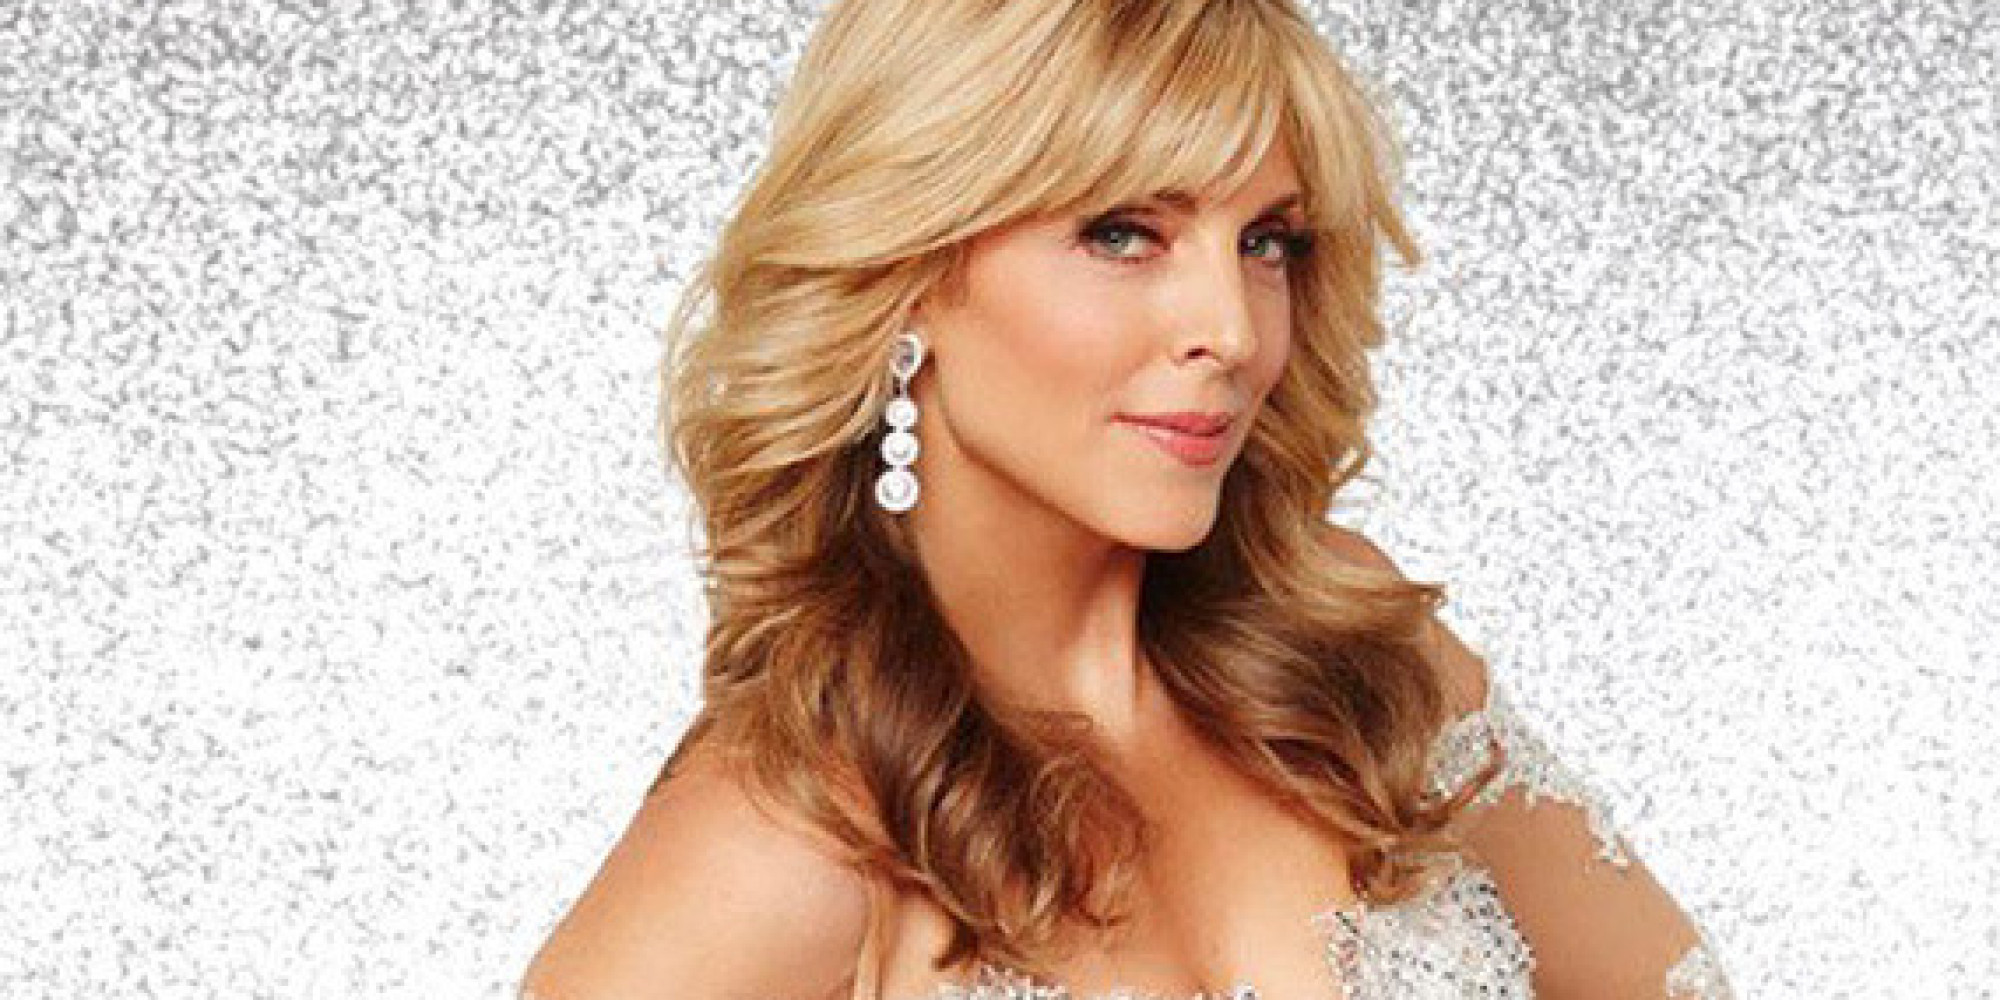 marla maples fitness